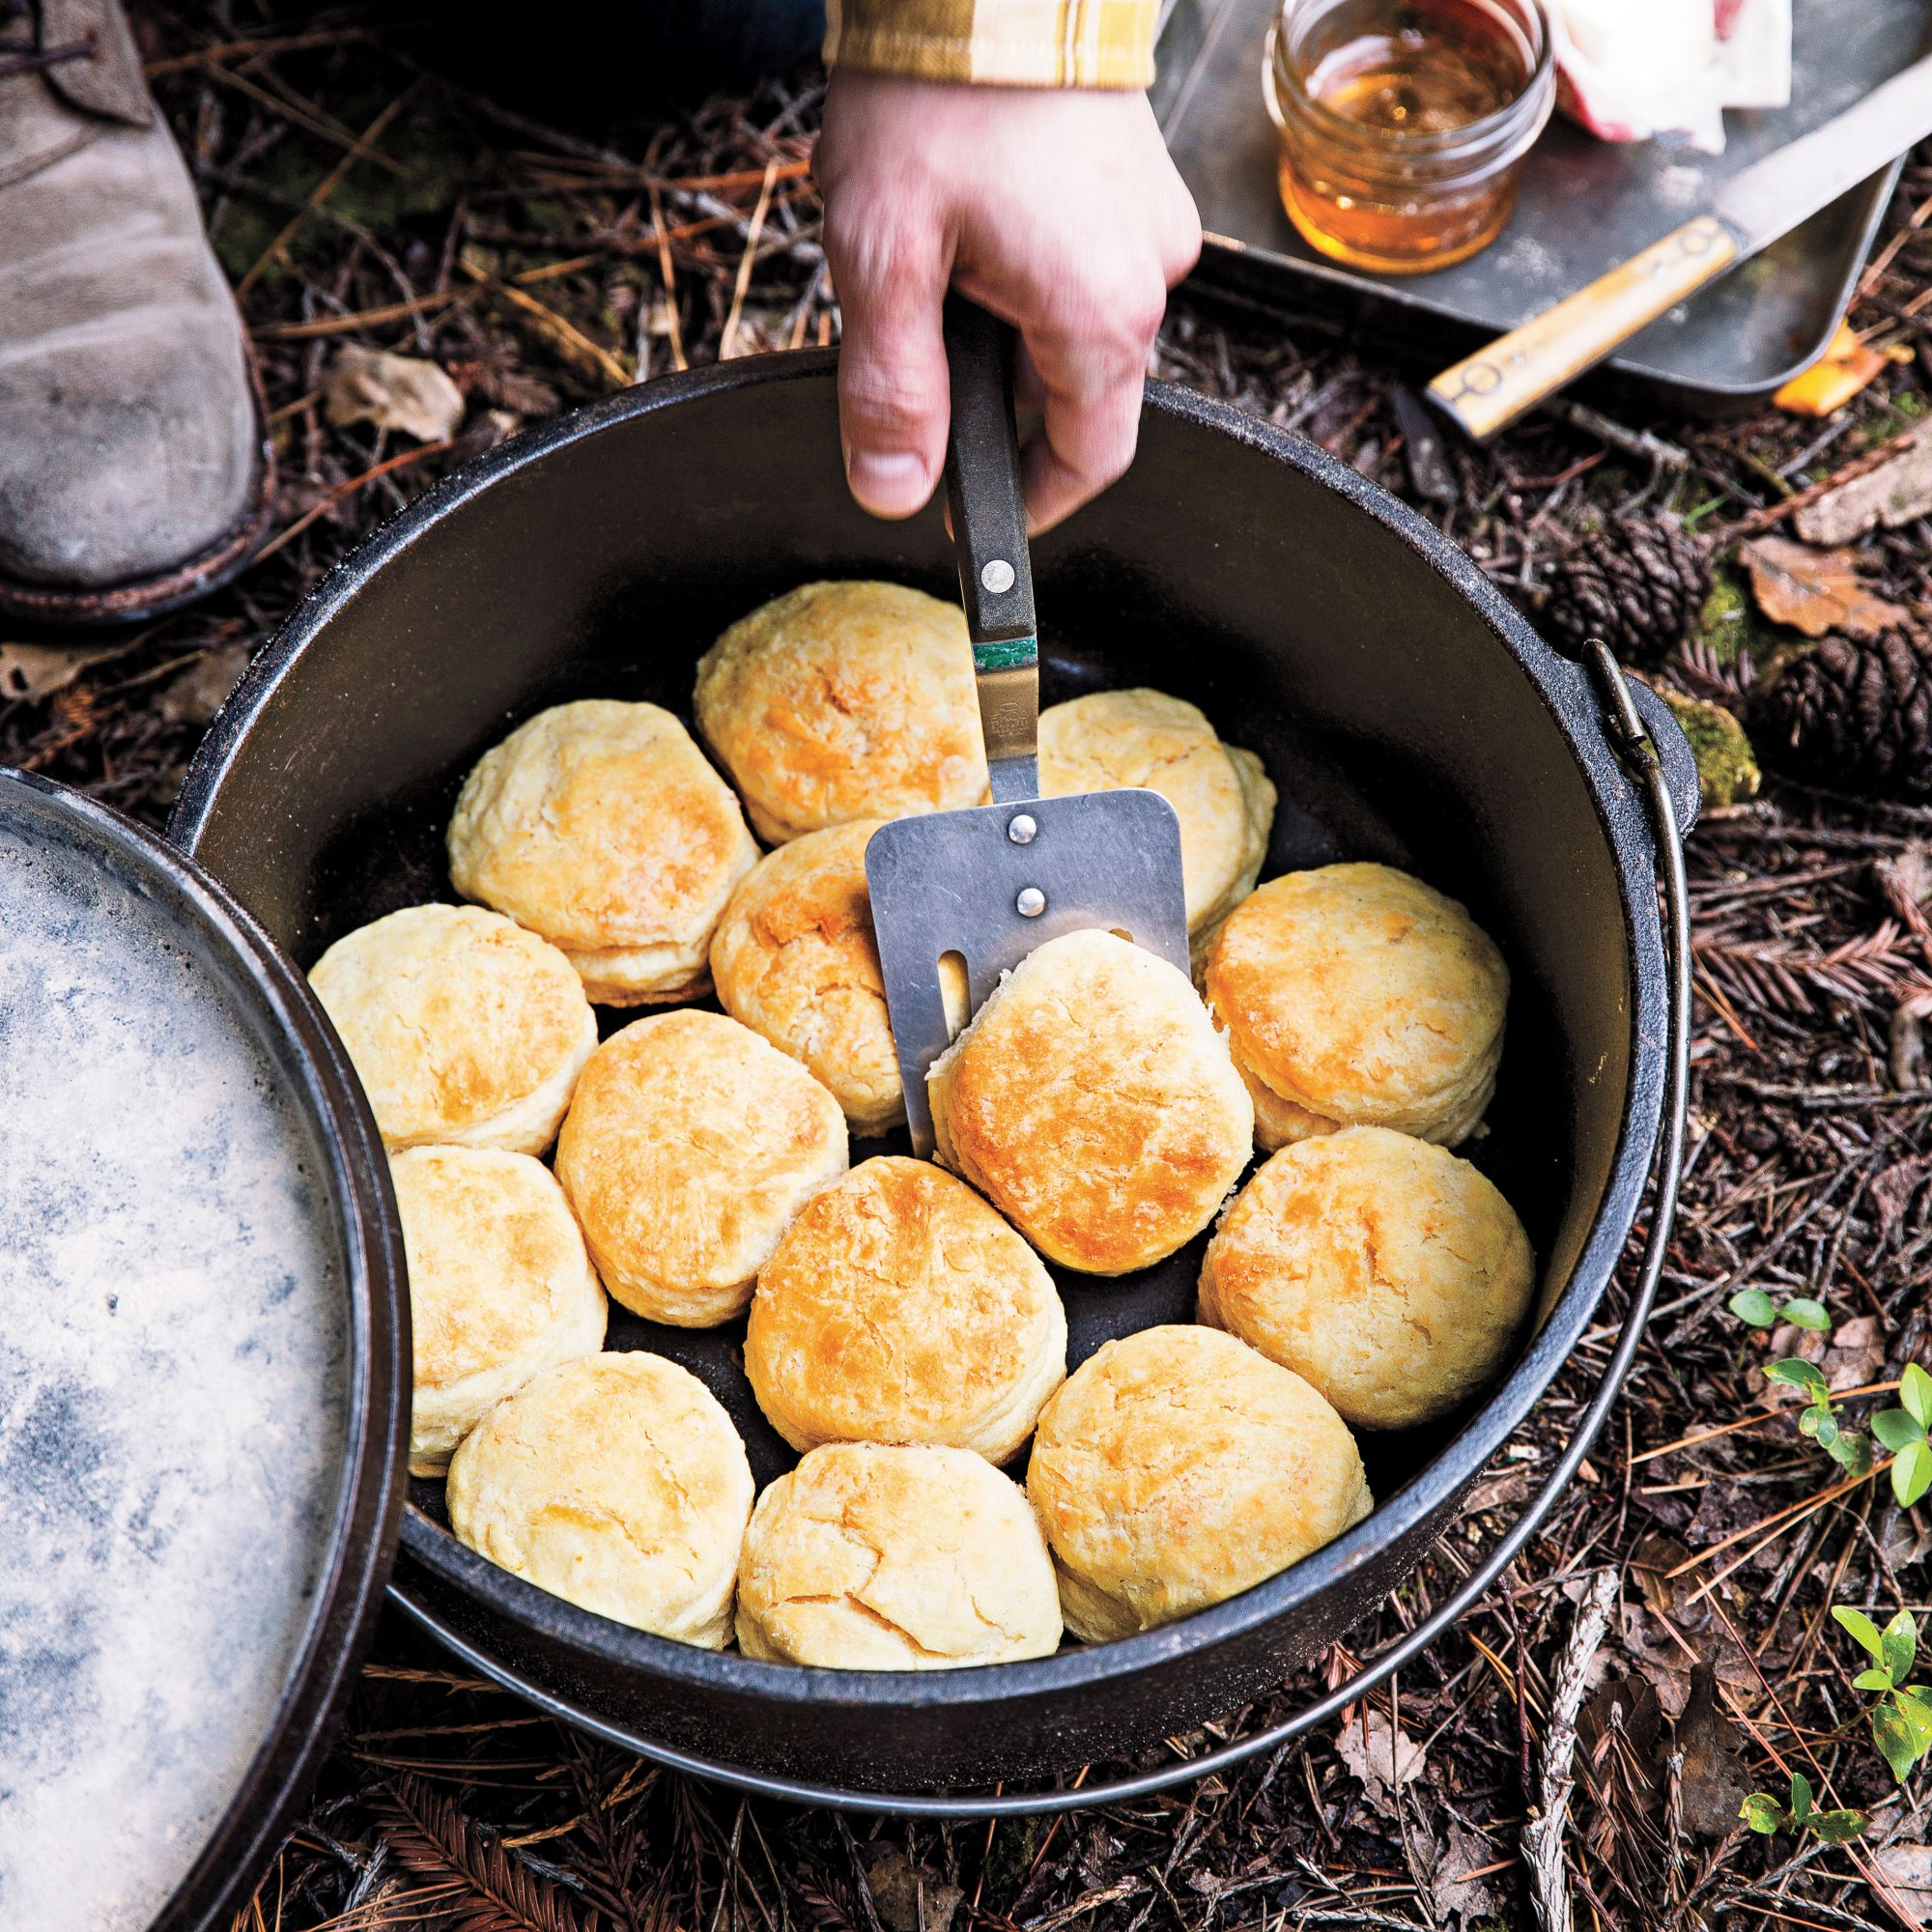 Mark klever 39 s dutch oven biscuits recipe myrecipes for Healthy dutch oven camping recipes